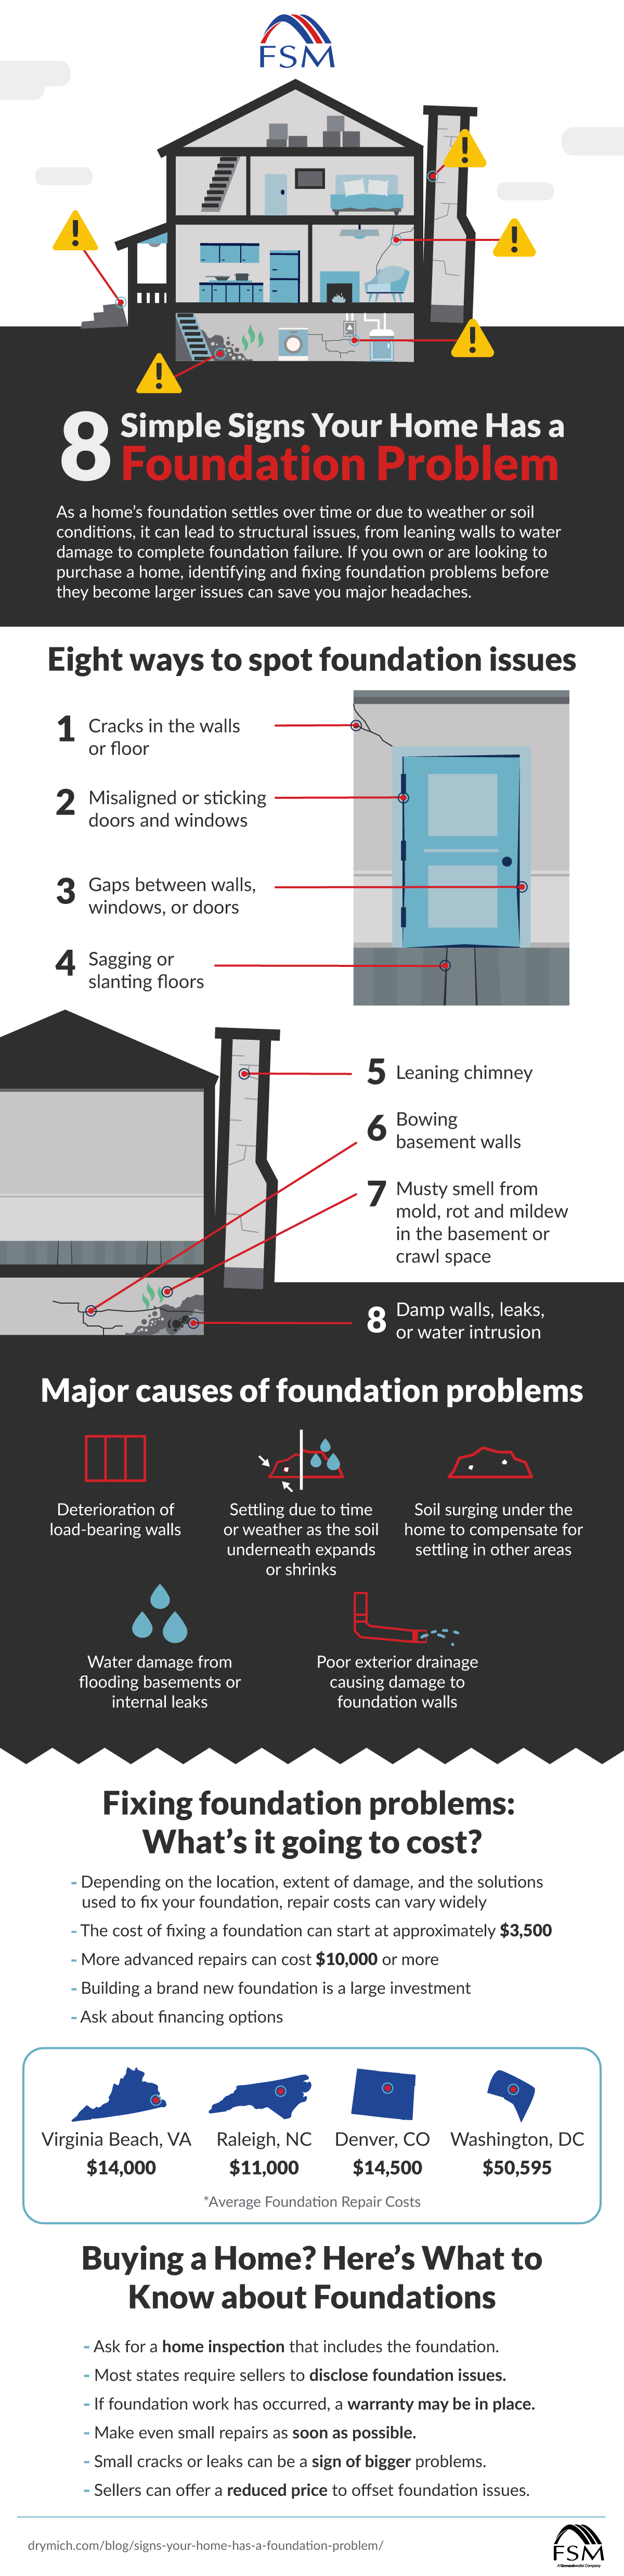 Eight Signs Your Home Has a Foundation Problem